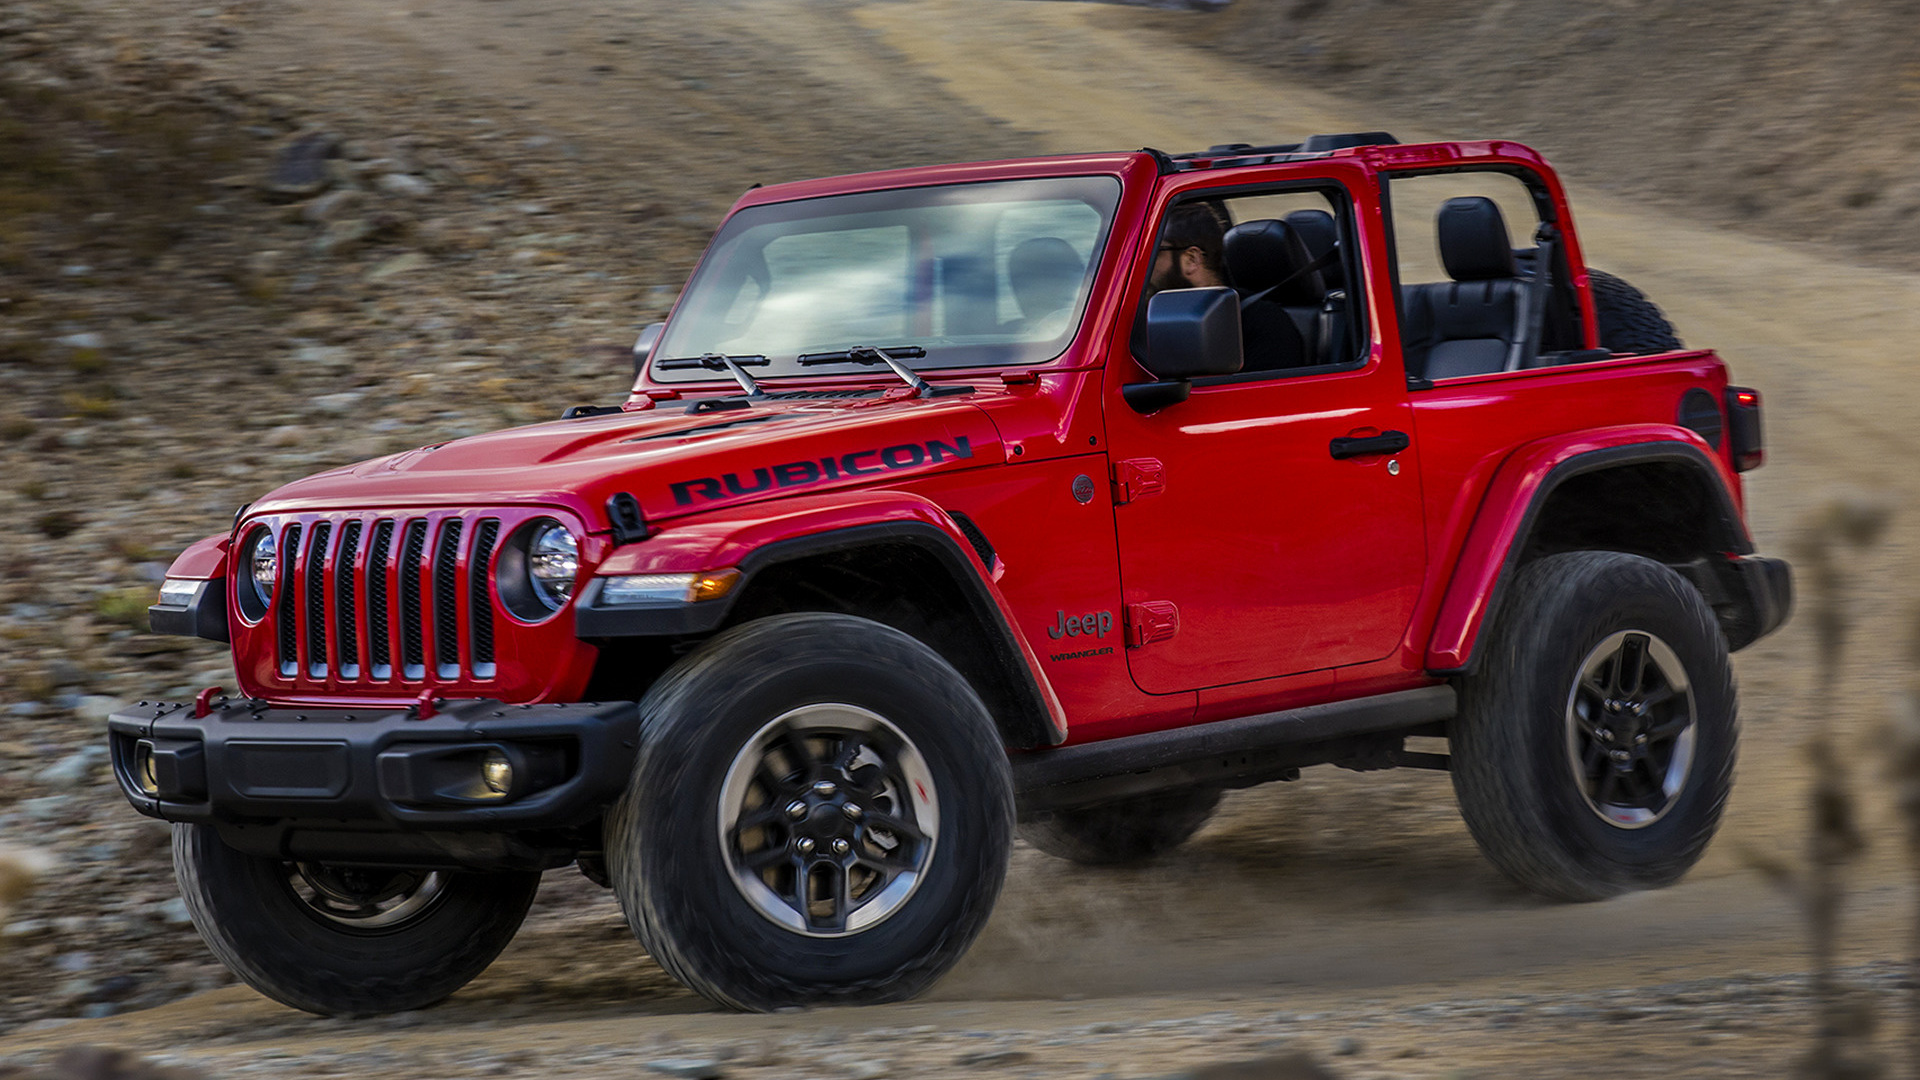 2018 Jeep Wrangler Rubicon - Wallpapers and HD Images ...